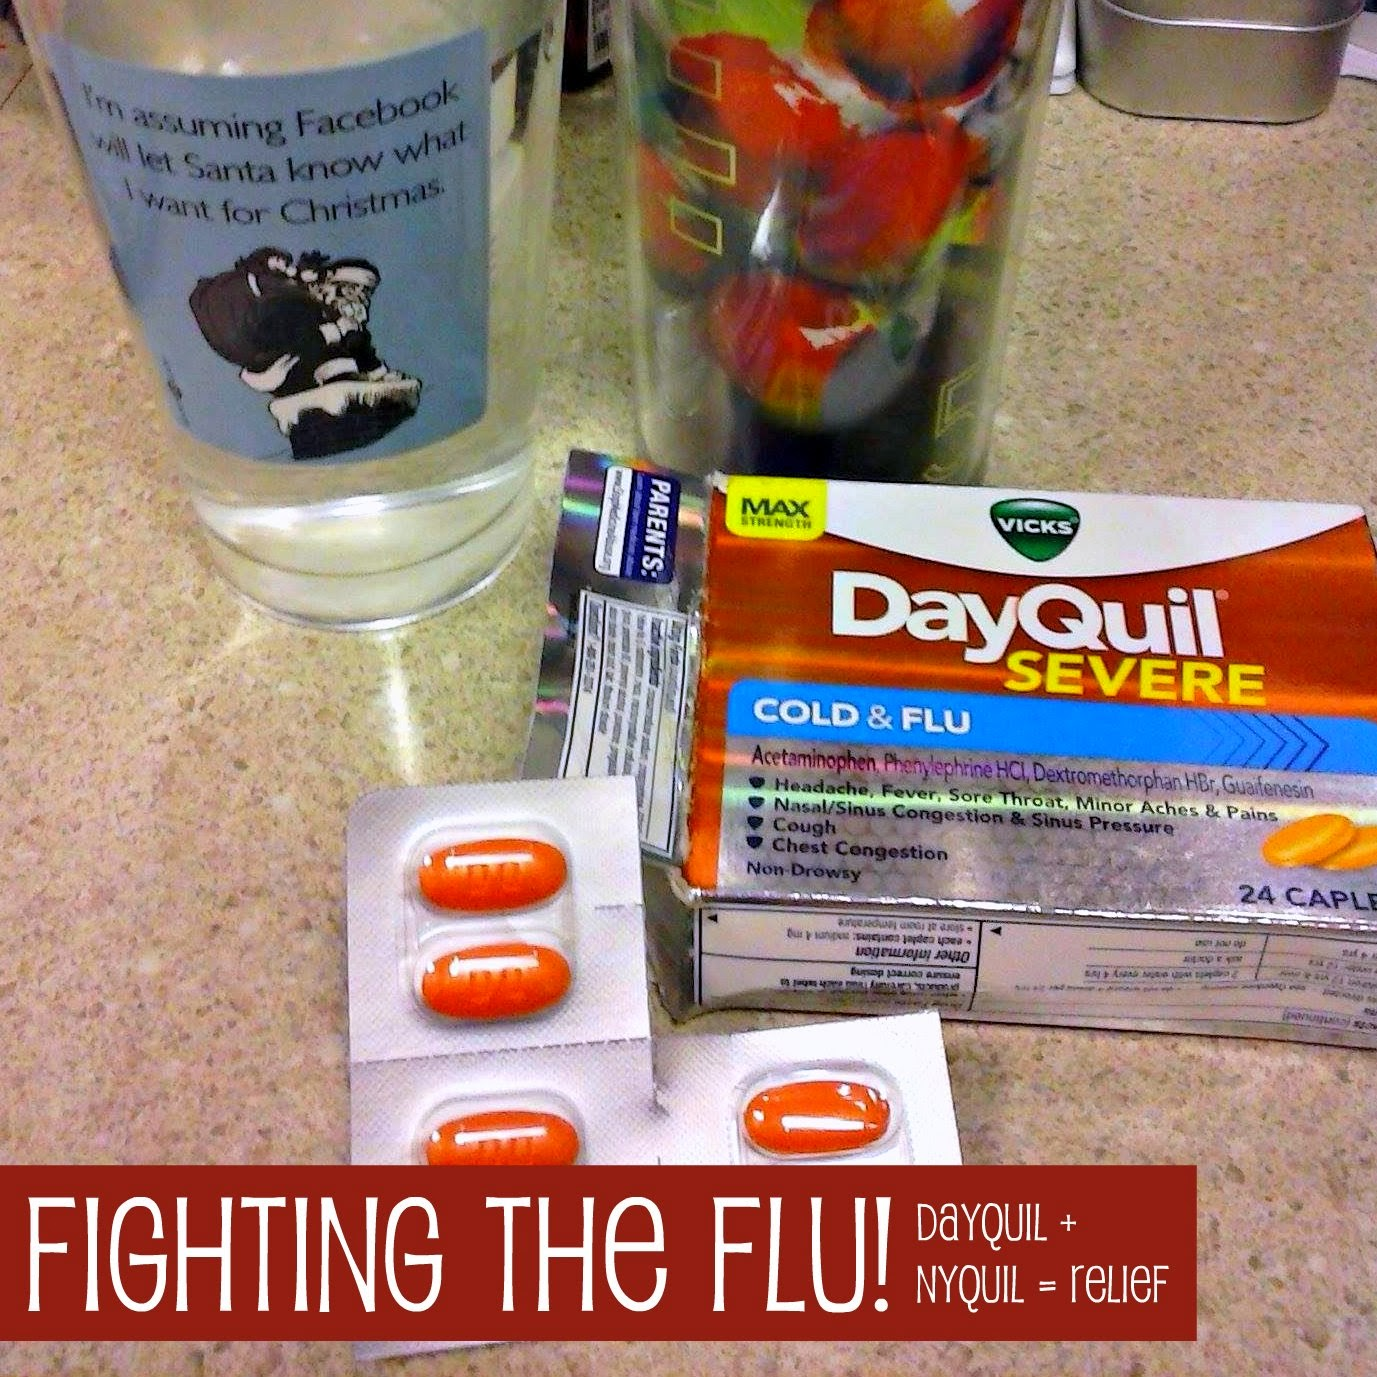 Flu Season is Upon Us and #ReliefIsHere from @Walmart